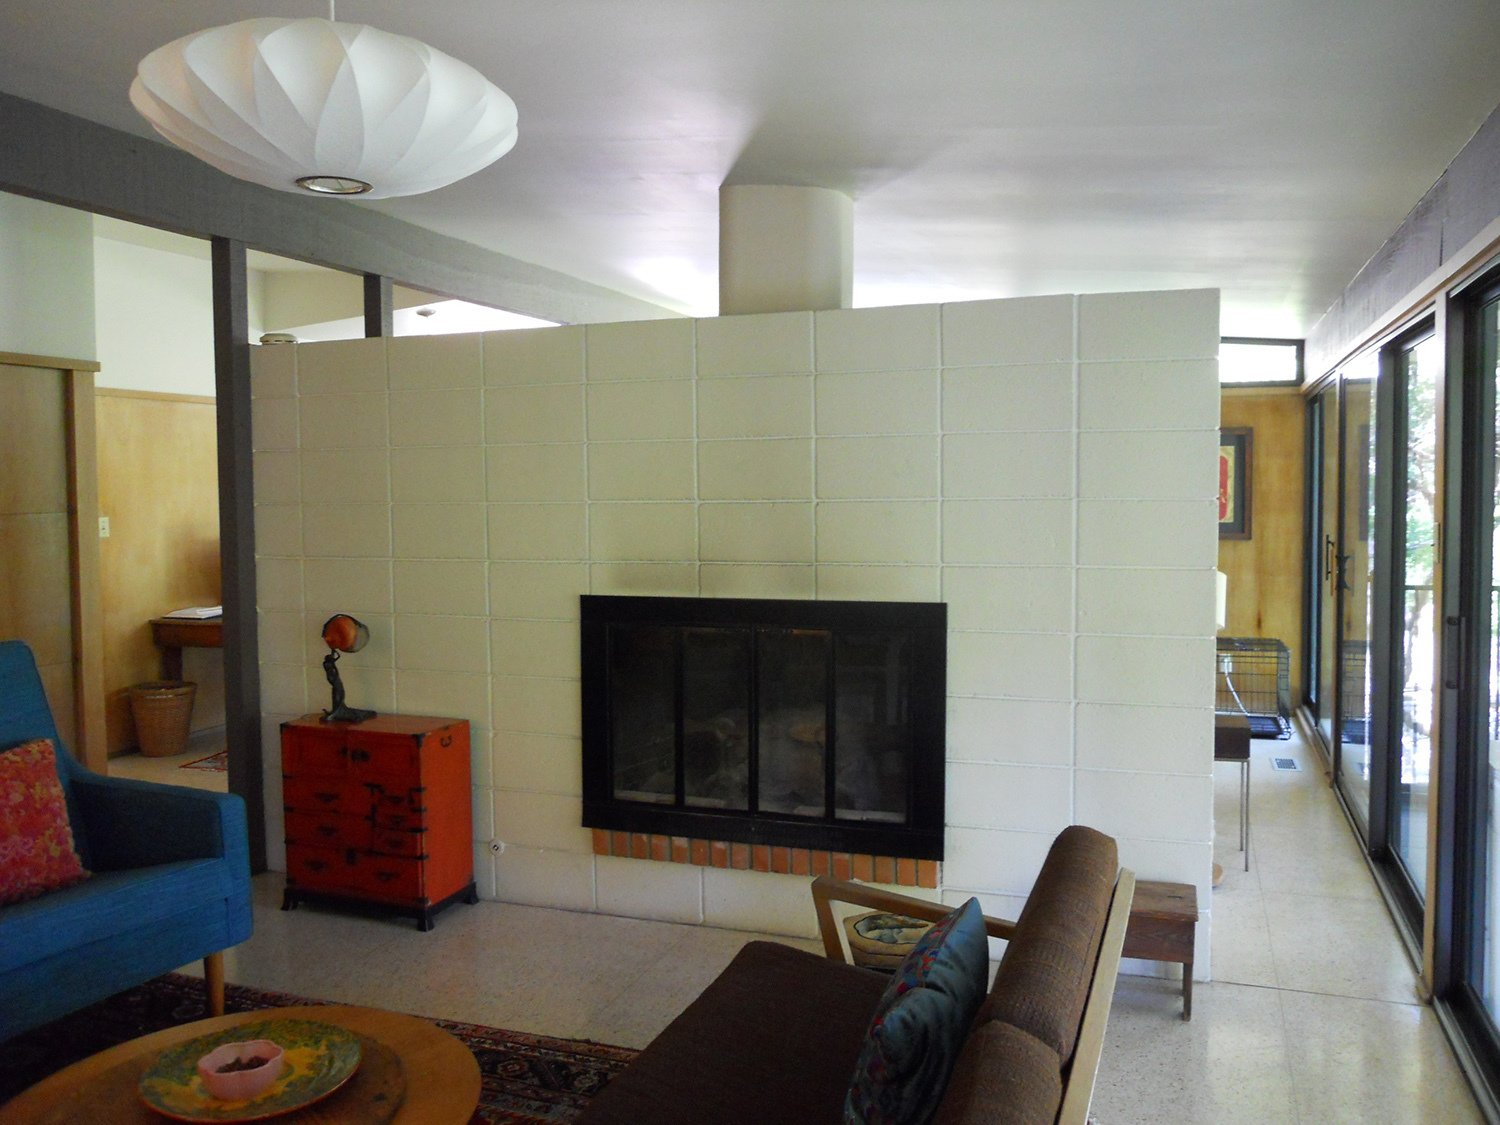 BEFORE: Looking disjointed, the living room in the pre-renovation Houser home is an alienated space, occluded from the natural light entering the spaces just beyond. Midcentury Renovation in Austin - Photo 11 of 13